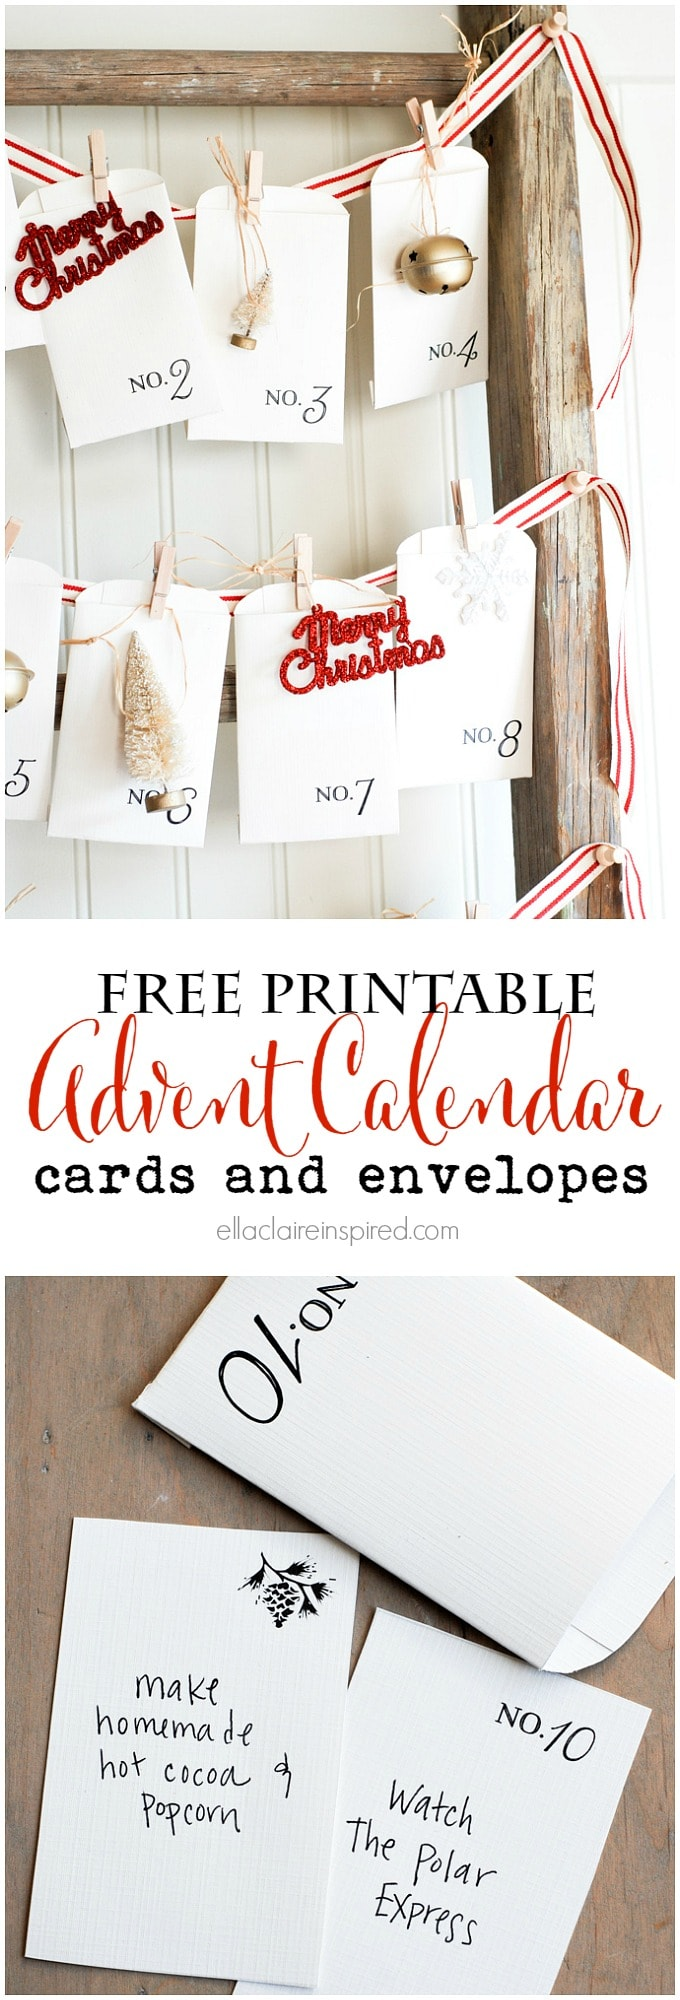 November Calendar Diy : Free printable vintage christmas advent calendar ella claire